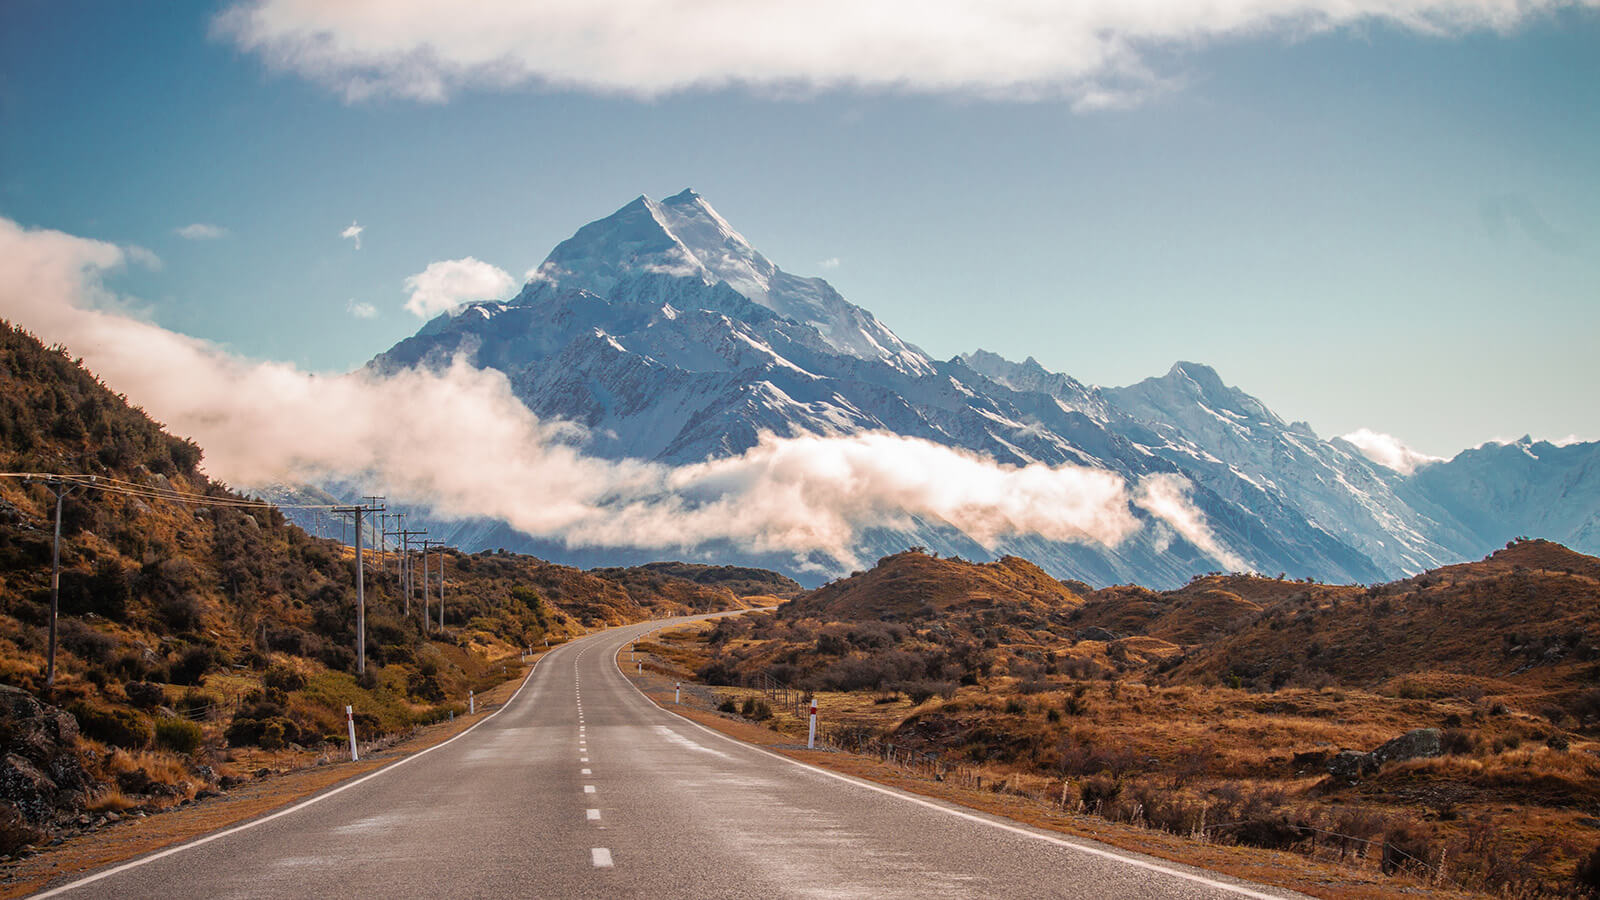 The road to Mount Cook, New Zealand, should be on your travel bucket list